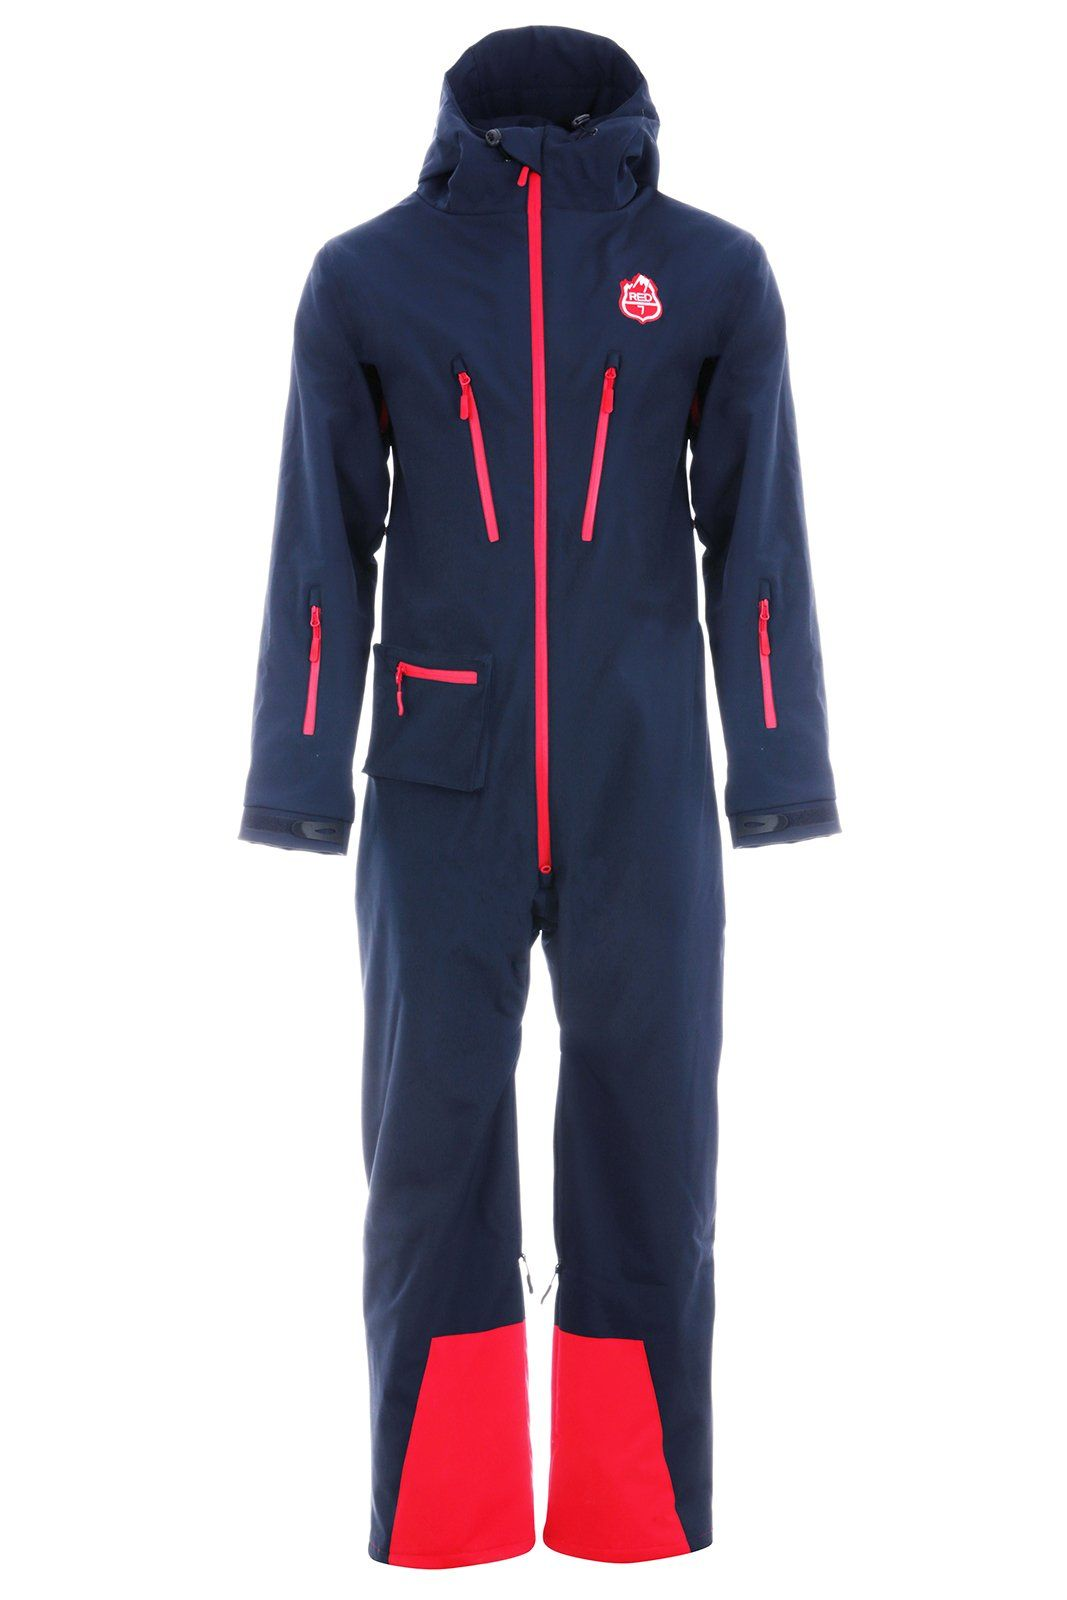 Red7 cg1 all-in-one suit in 2019   Red7SkiWear   Pinterest   Suits ... f6513931ef7